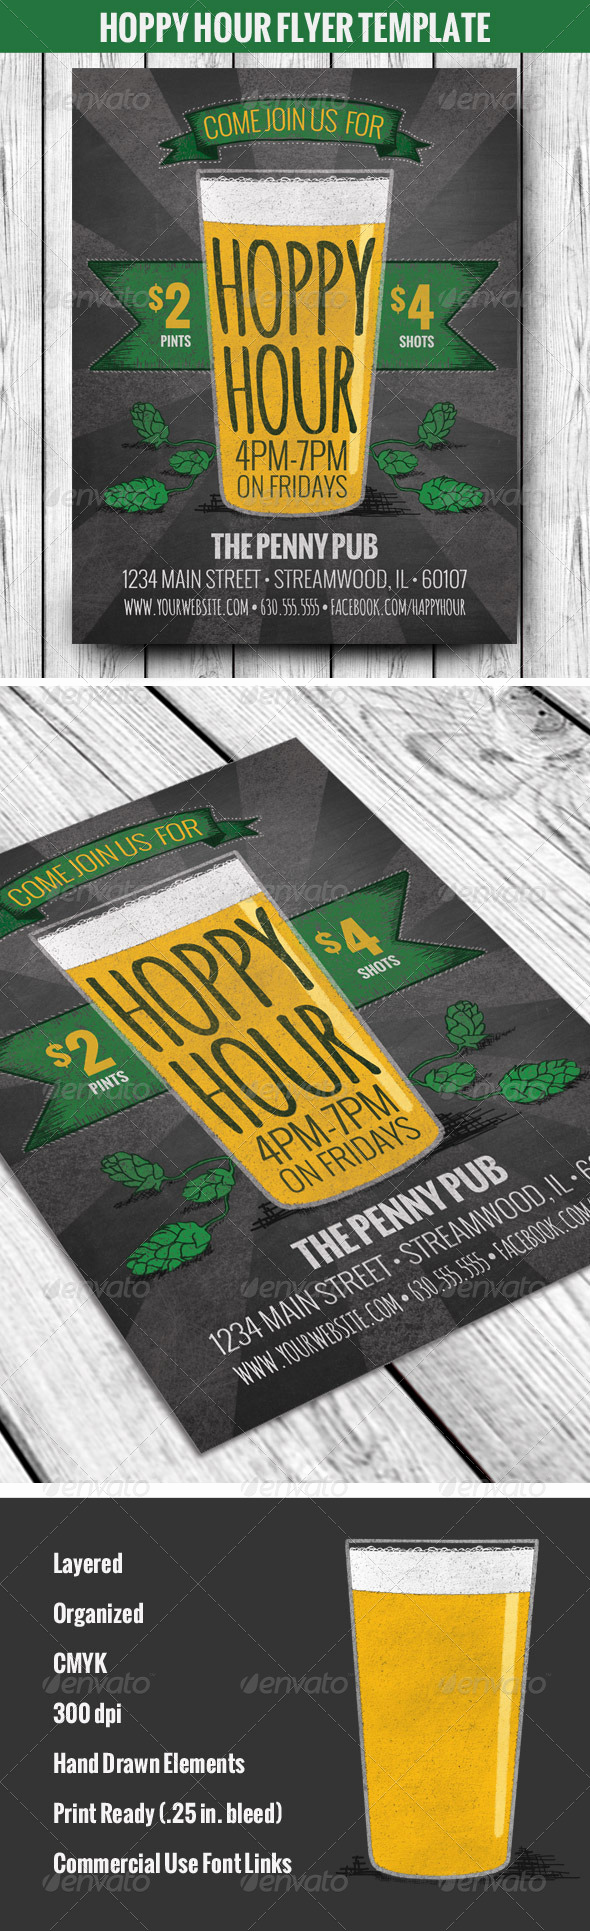 Happy Hour Menu Template Fresh Pin by Awesome Graphic Design On Flyer Templates